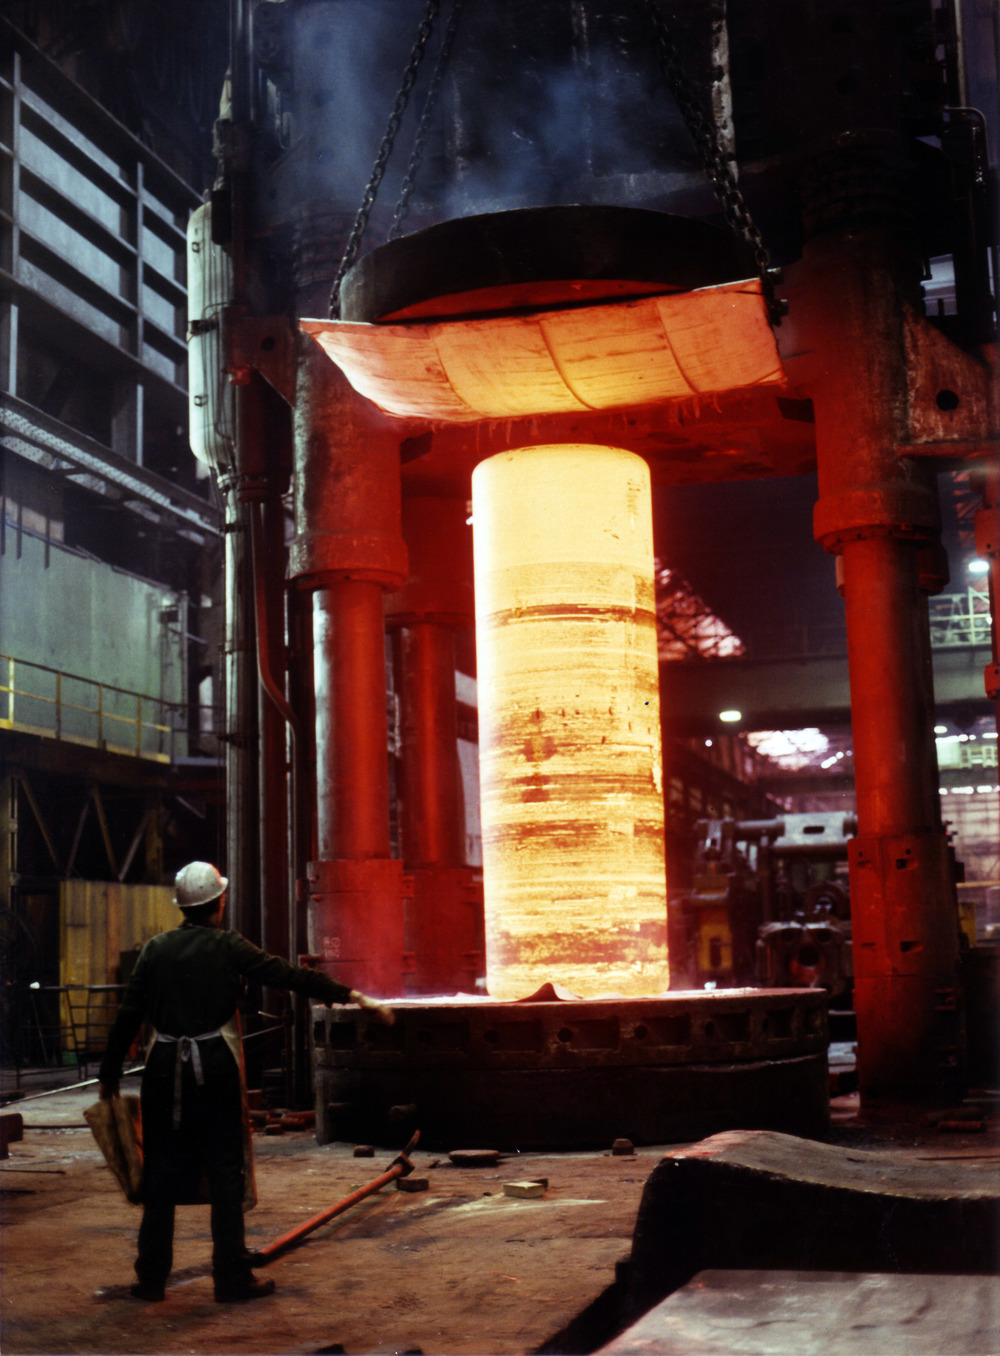 Steel forging. Image courtesy of Wikimedia Commons, published under  CC BY 3.0 .